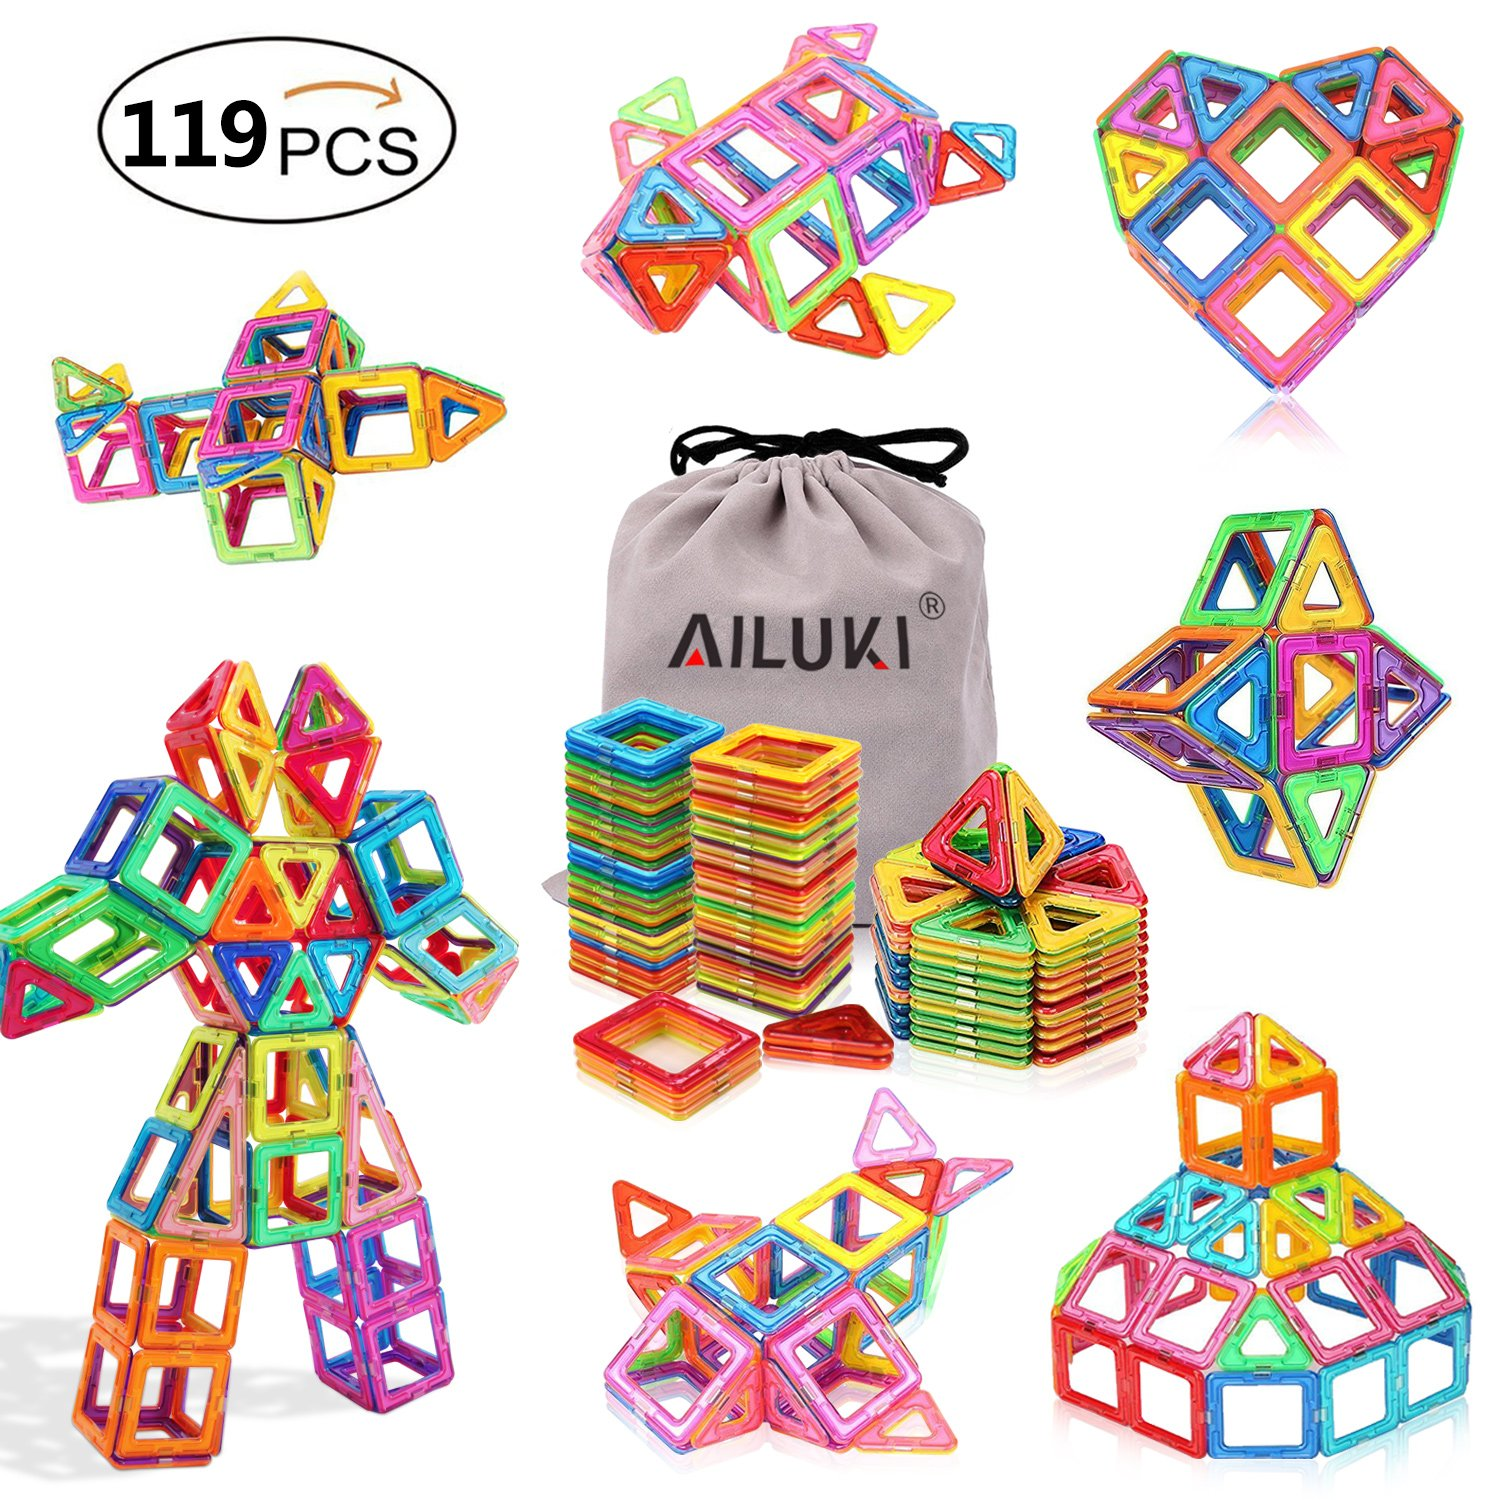 Magnetic Blocks,Ailuki 119 PCS Magnetic Building Blocks Set Strong Magnetic Tiles Stacking Blocks for Children Educational and Creative Imagination Development Review